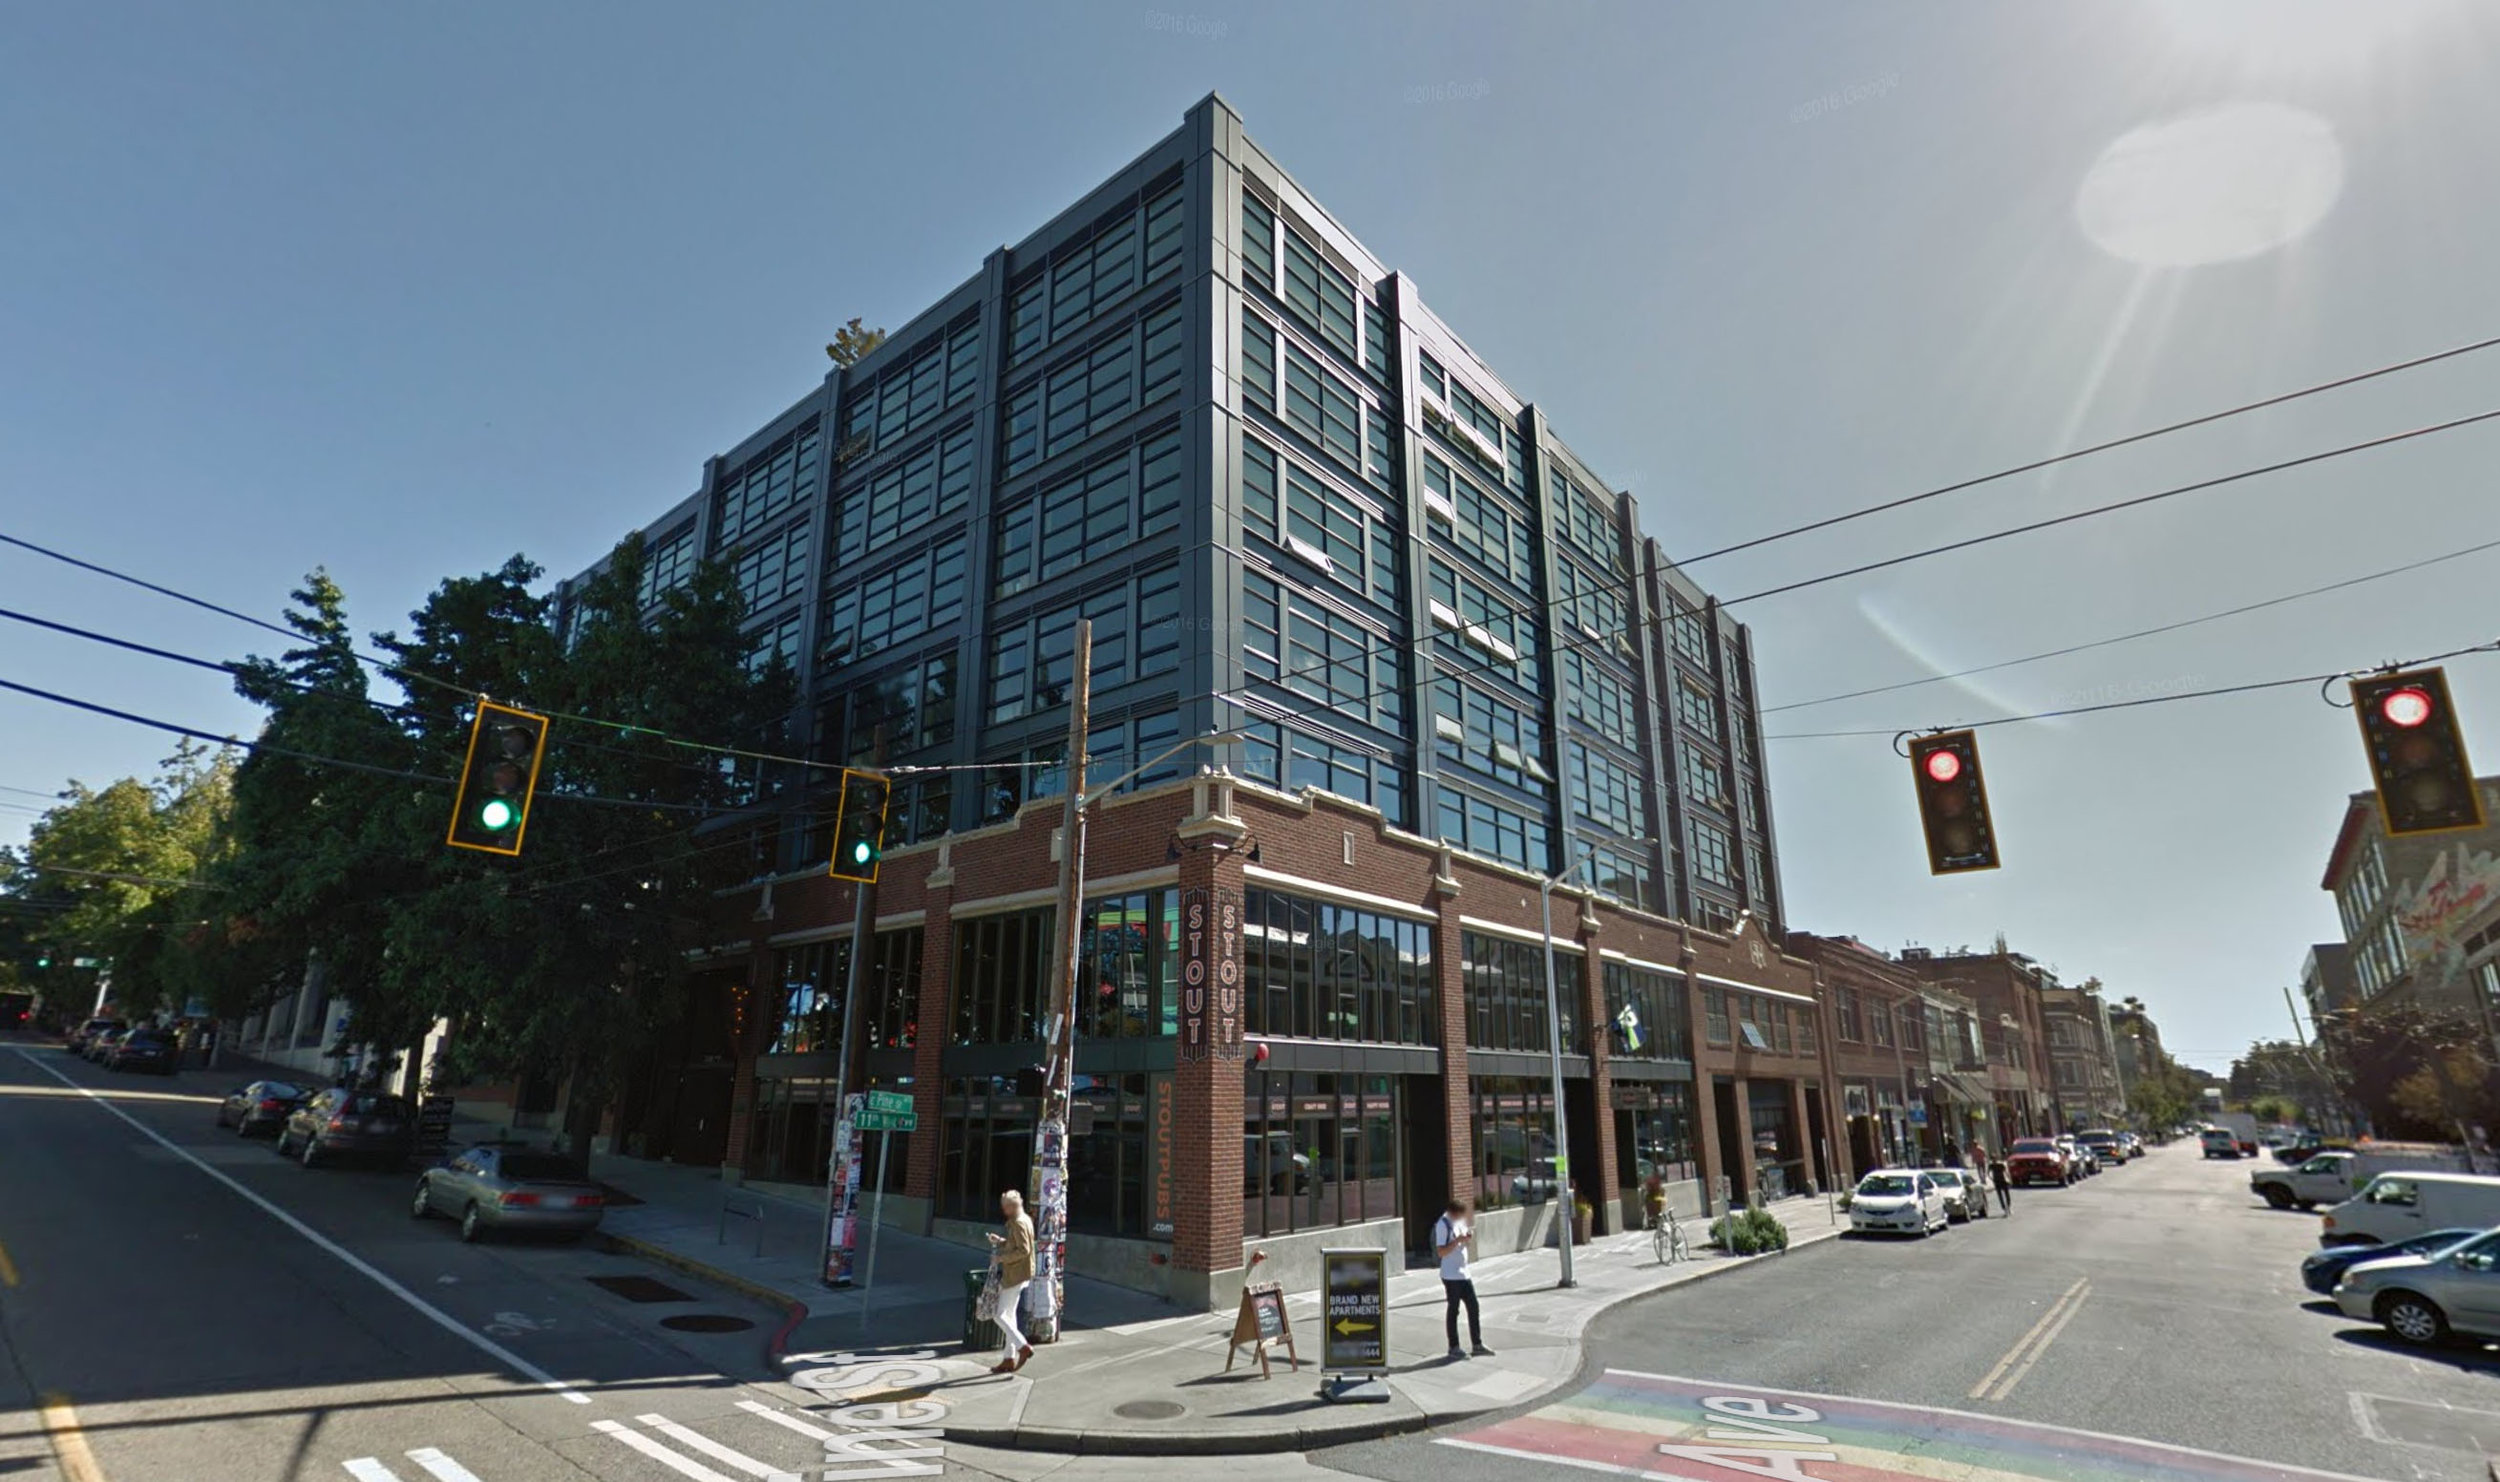 New developments can be designed to retain the heritage features of old structures, such as the facade seen here in a Seattle redevelopment project, while still allowing for growth and densification.